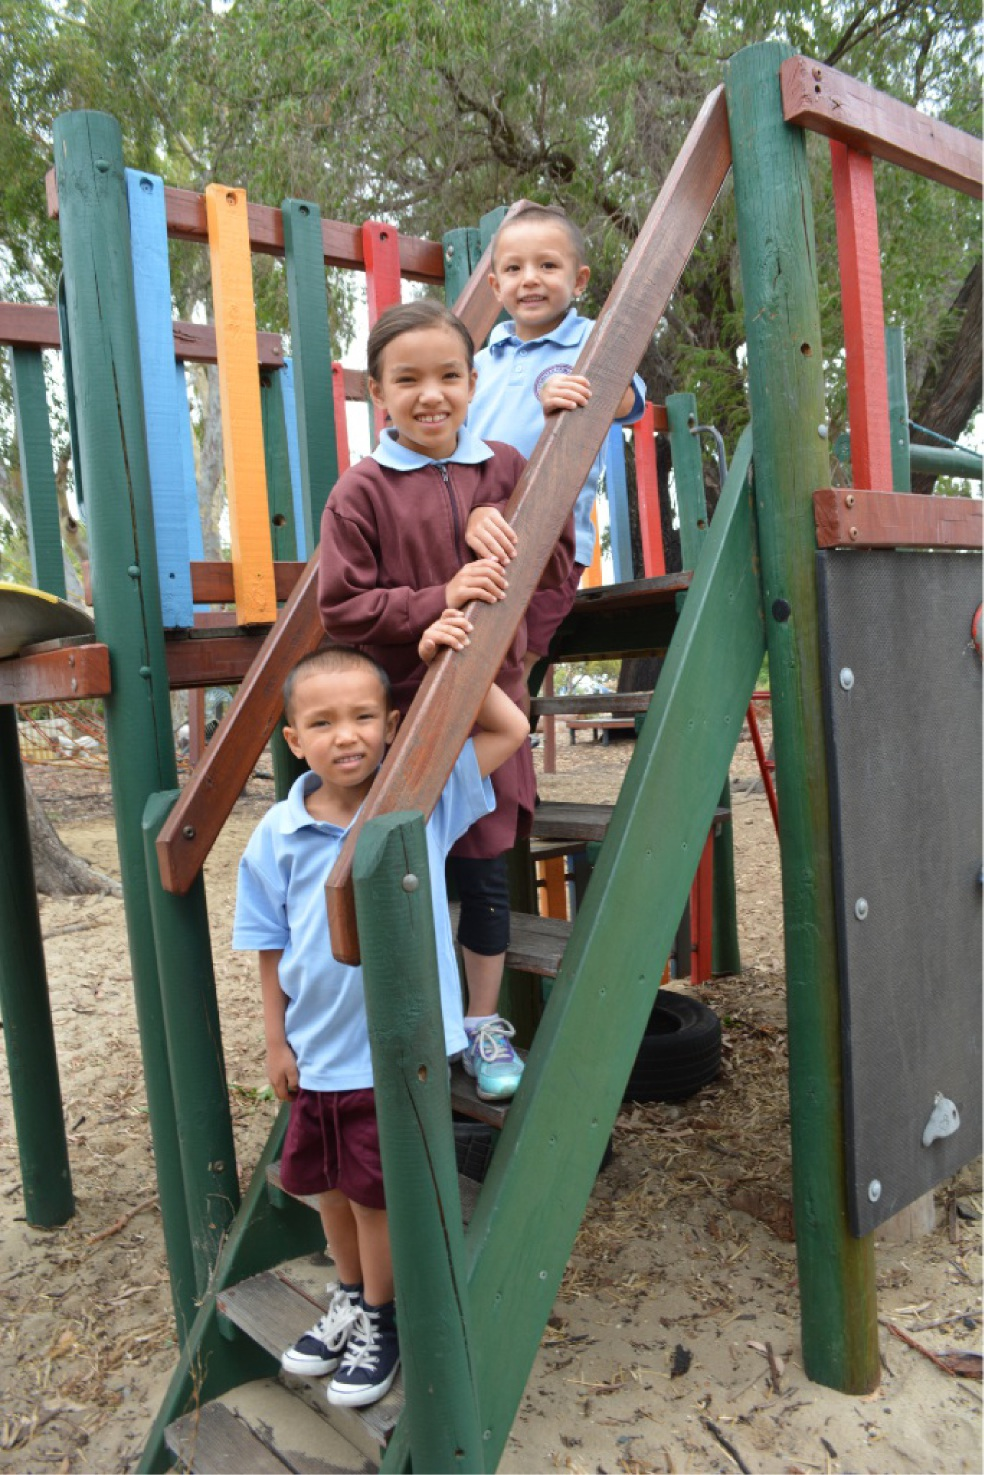 Mace, Dali and Haro started Term 1 at Bayswater Primary School last week. Picture: Toyah Shakespeare